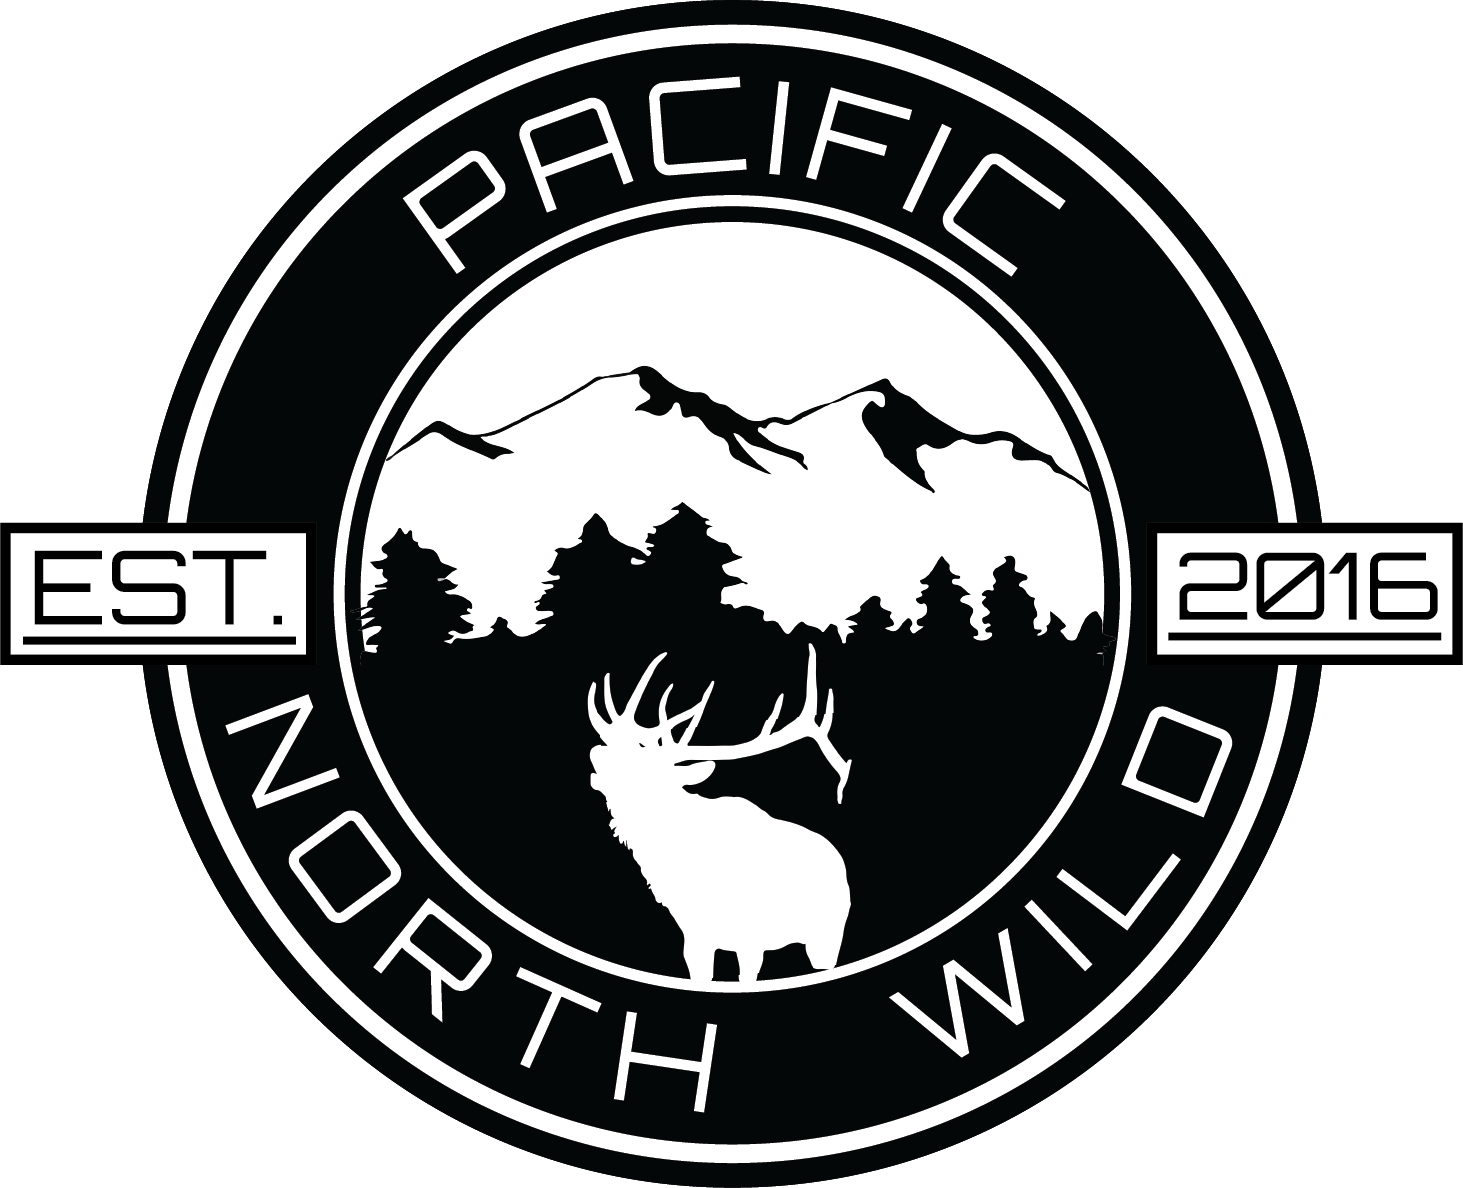 Pacific North Wild